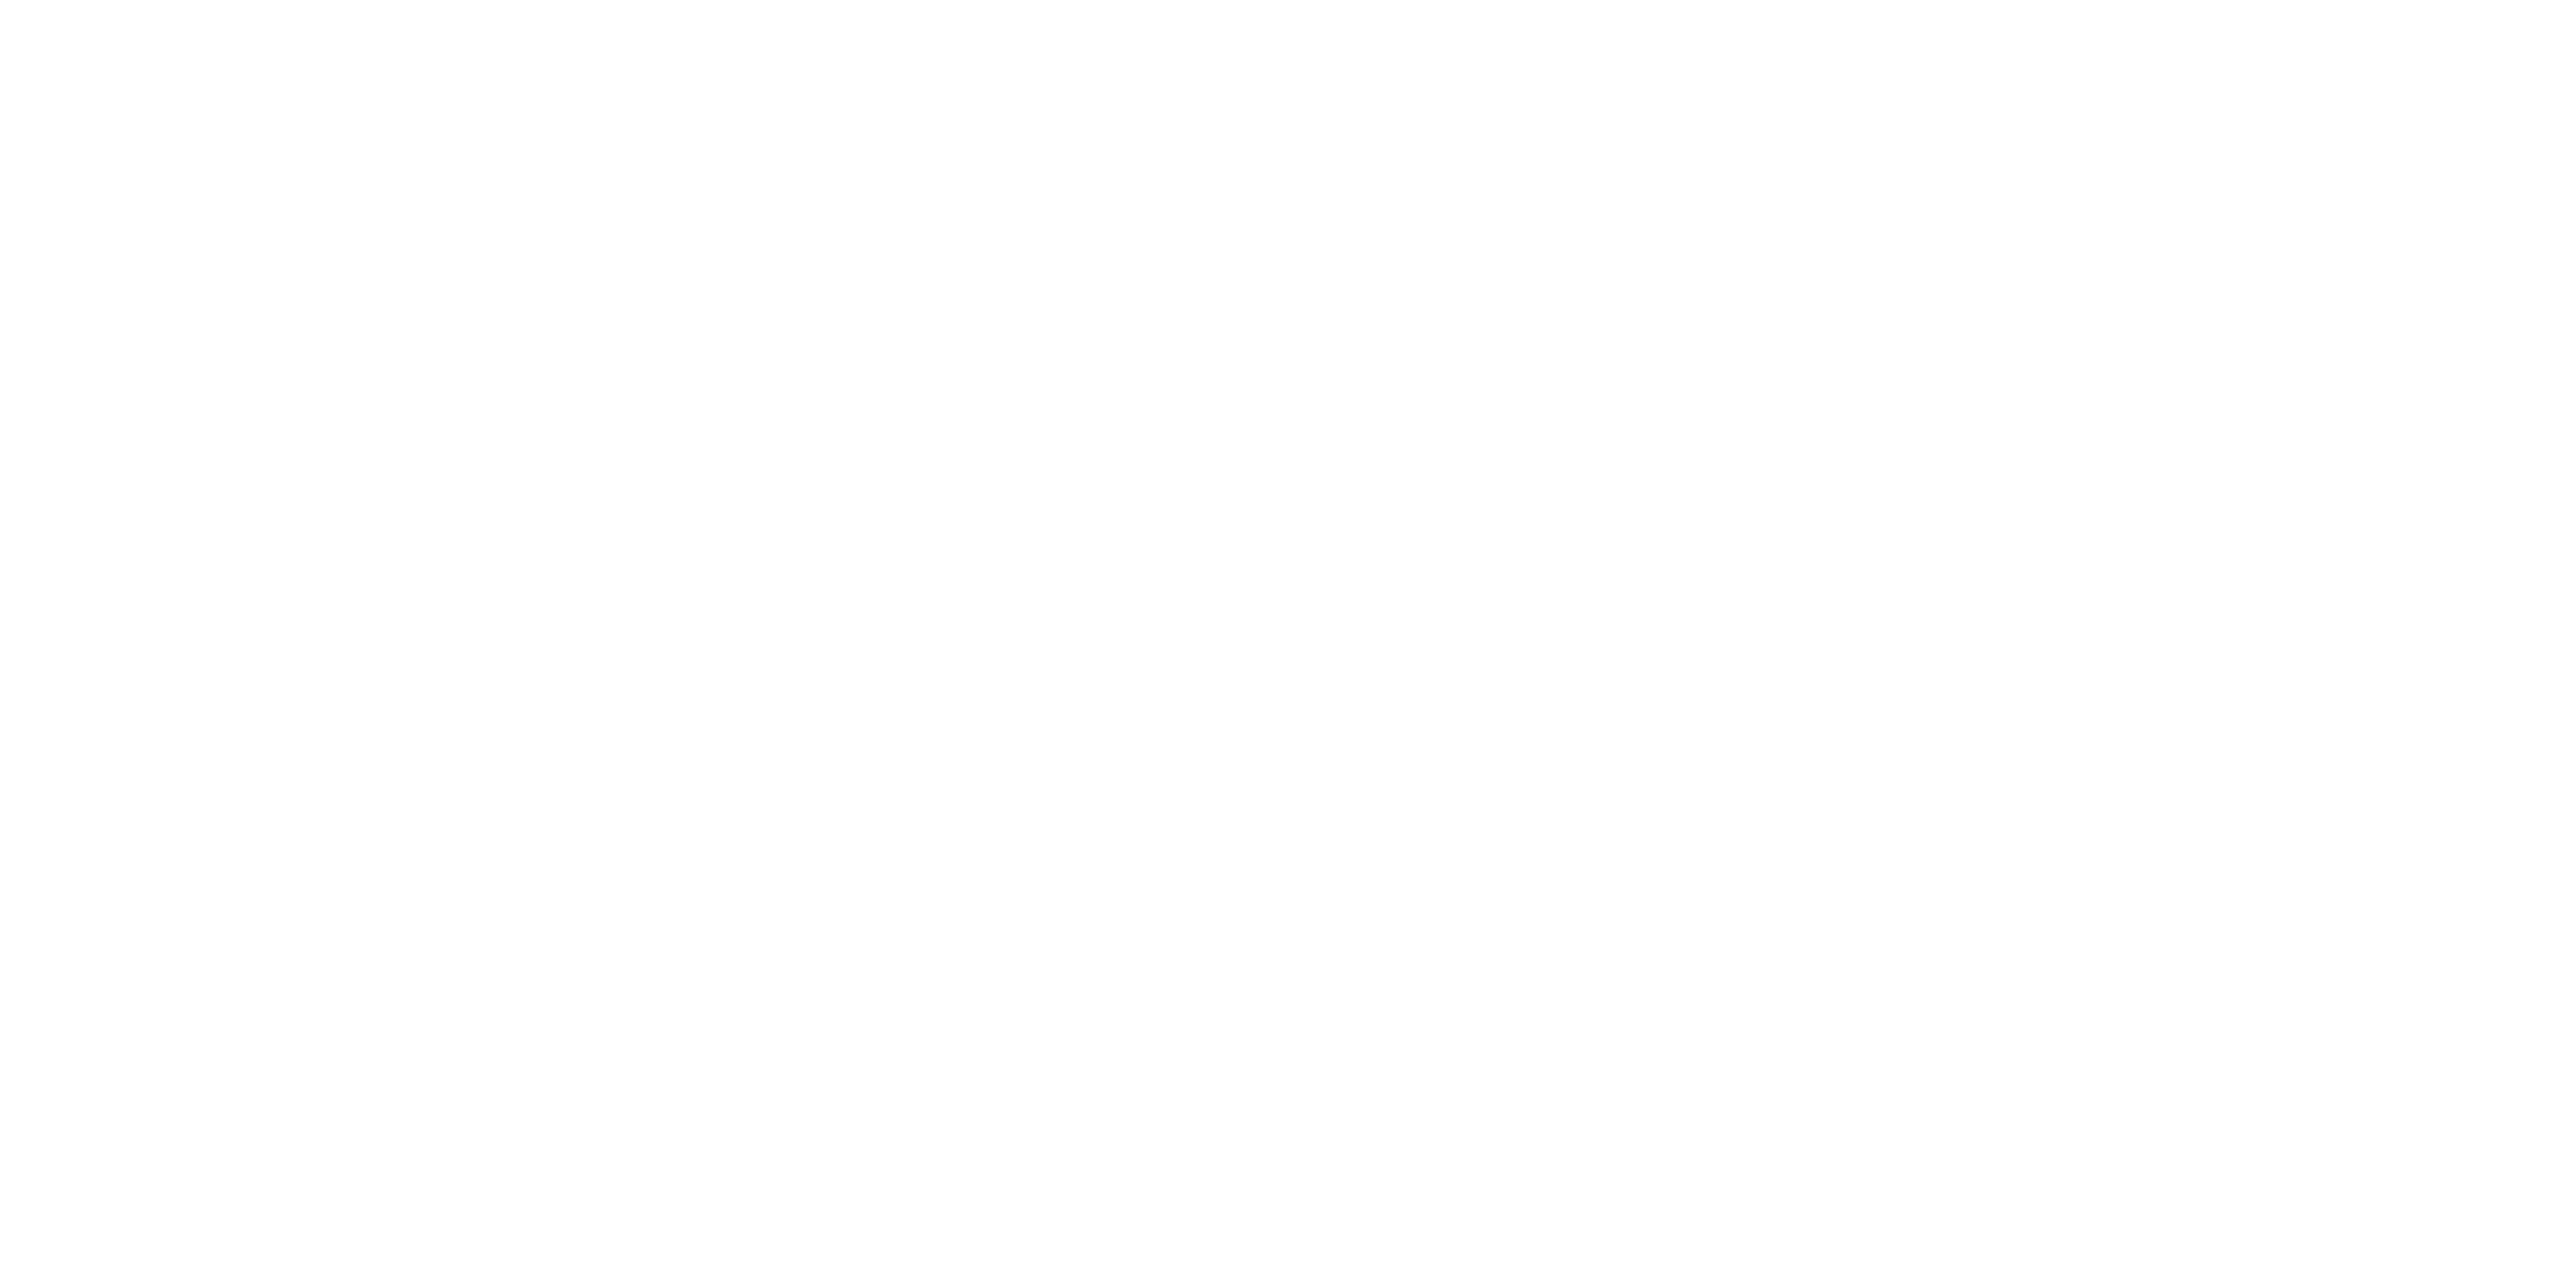 J D Barlow Construction LLC DBA Barlow Engineering